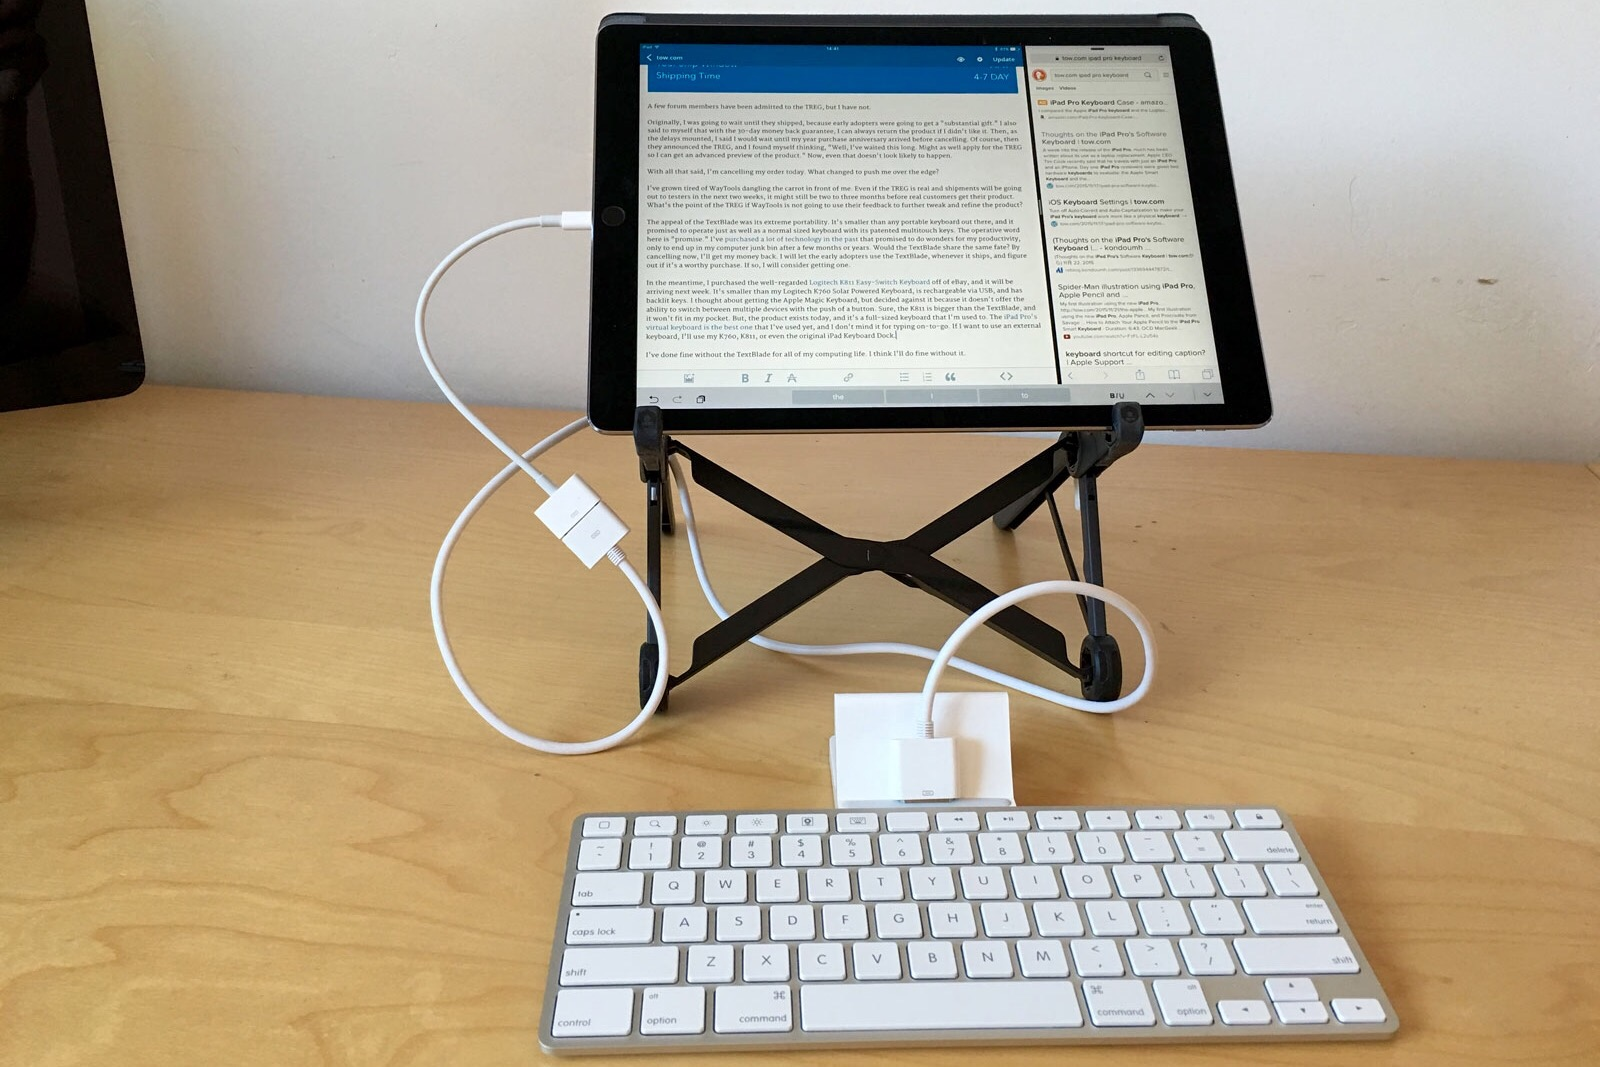 iPad Pro with iPad Keyboard Dock